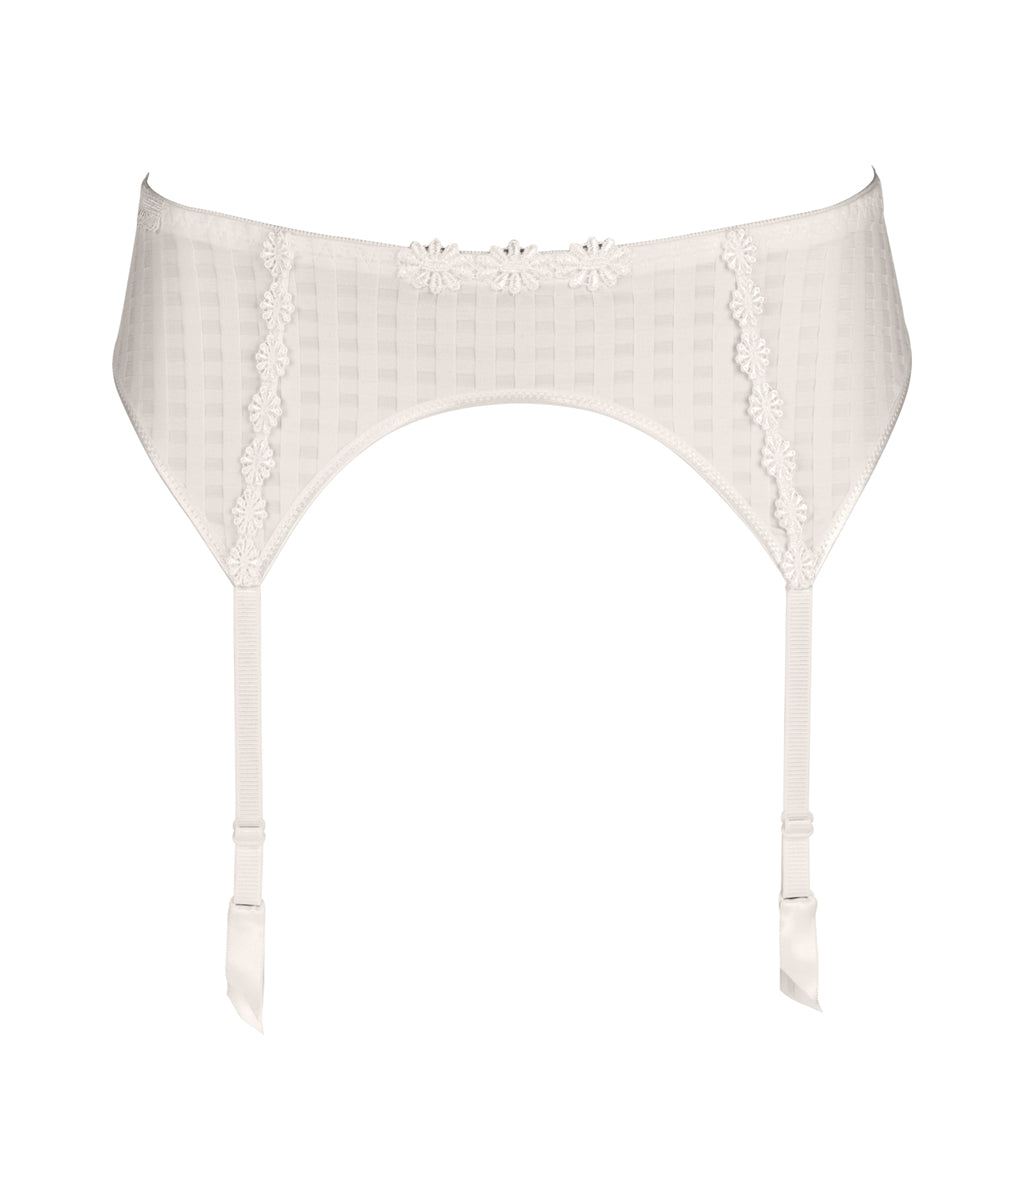 Marie Jo 'Avero' (Natural) Suspender Belt - Sandra Dee - Product Shot - Front